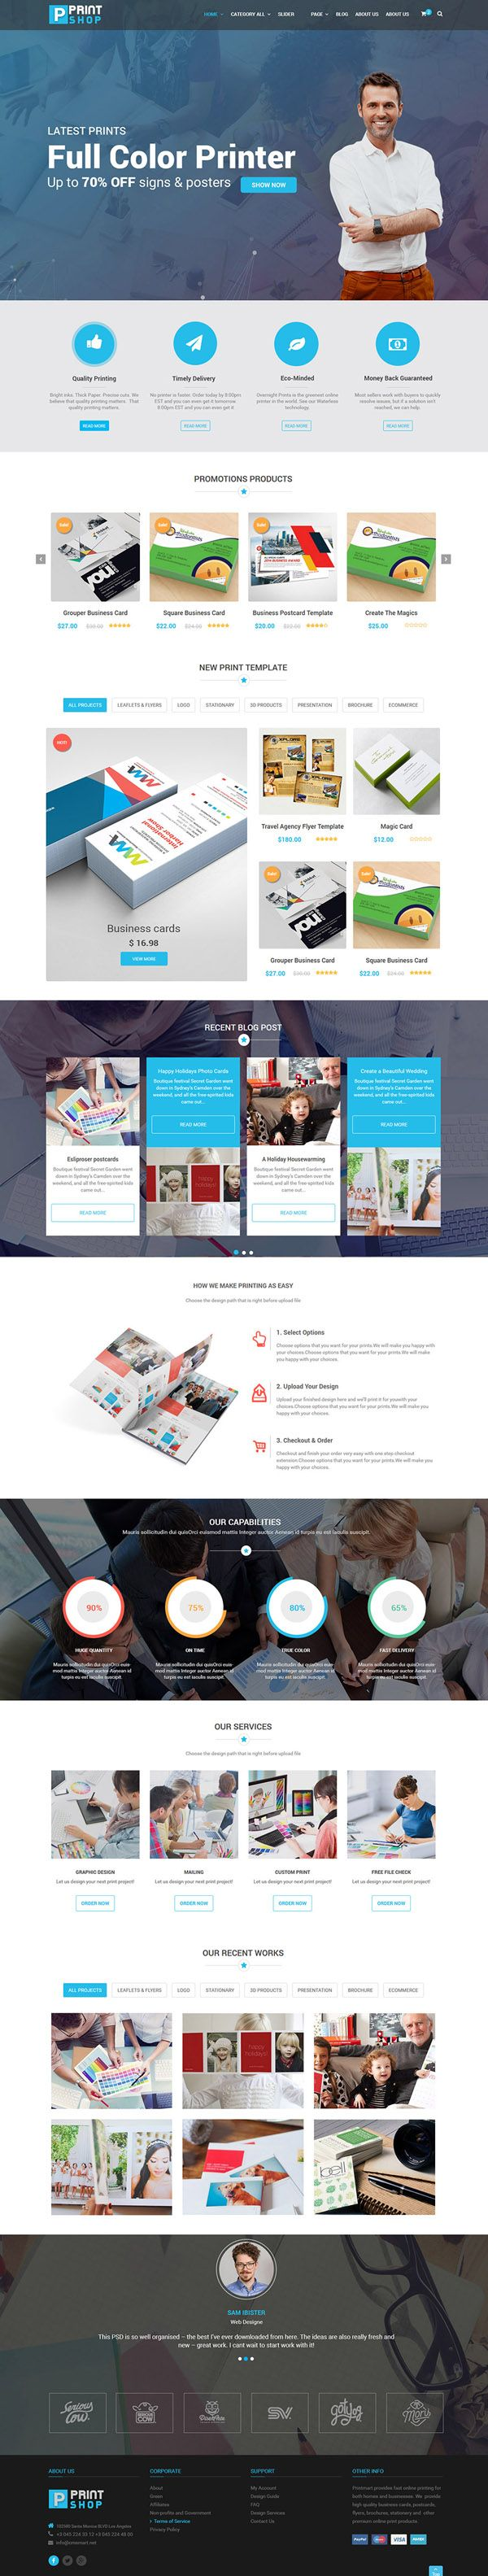 776 best enterprise website images on pinterest web design buy printshop wordpress responsive printing theme by netbaseteam on themeforest printshop wordpress responsive printing theme is a stuning theme that toneelgroepblik Image collections